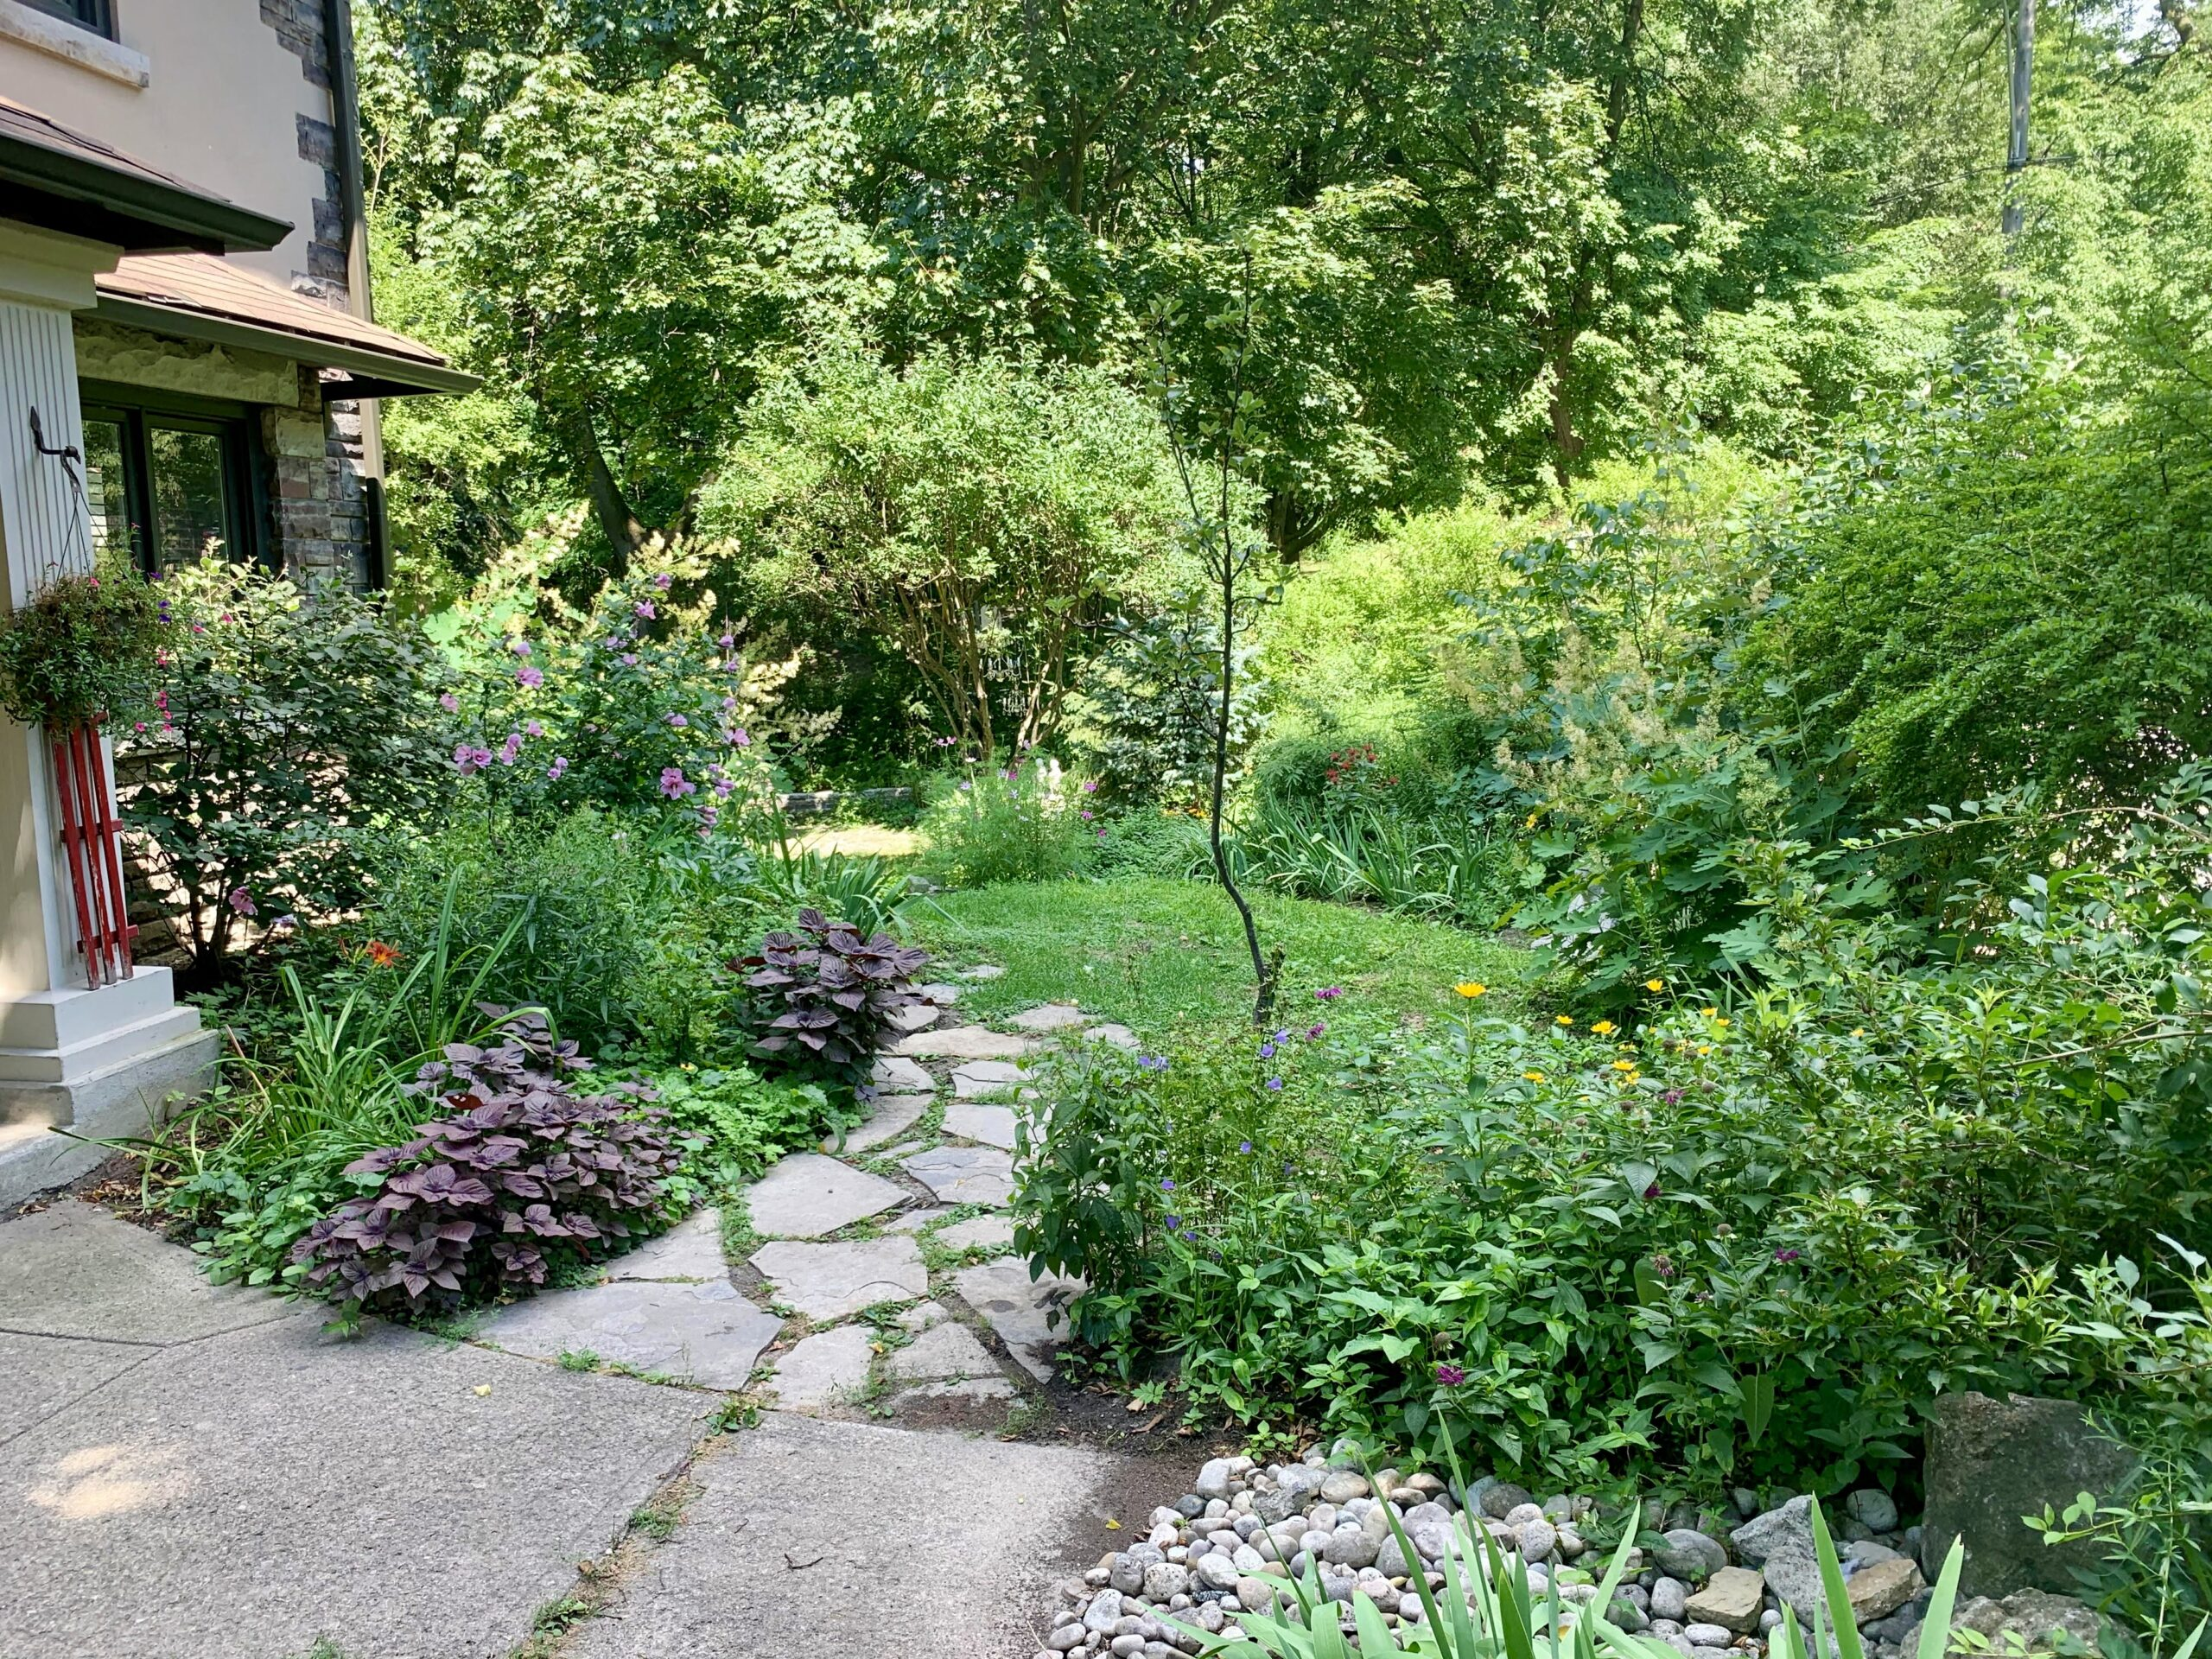 garden and path leading to side of home